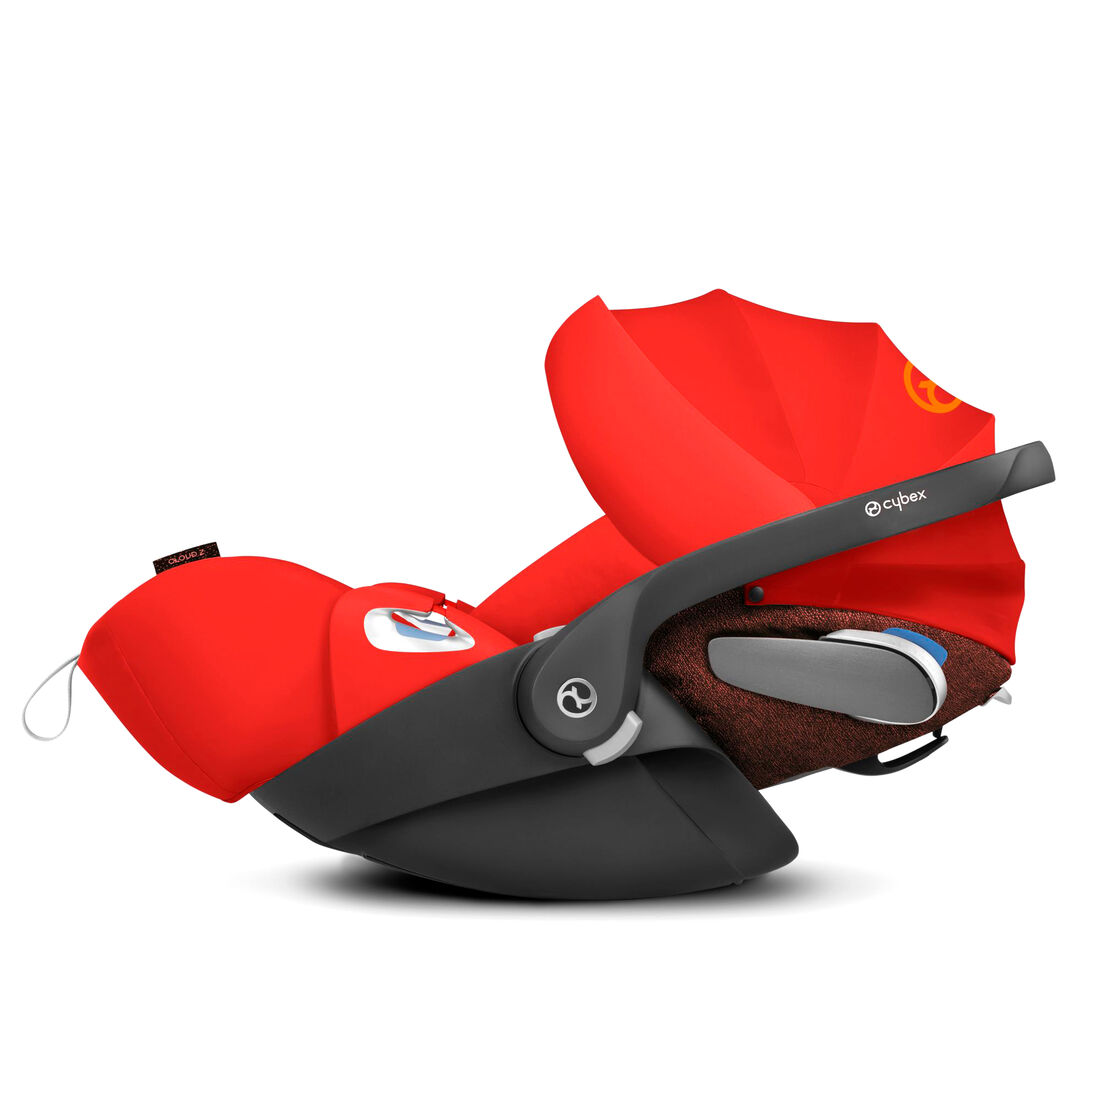 CYBEX Cloud Z i-Size incl. SensorSafe - SIDE IMPACT PROTECTION